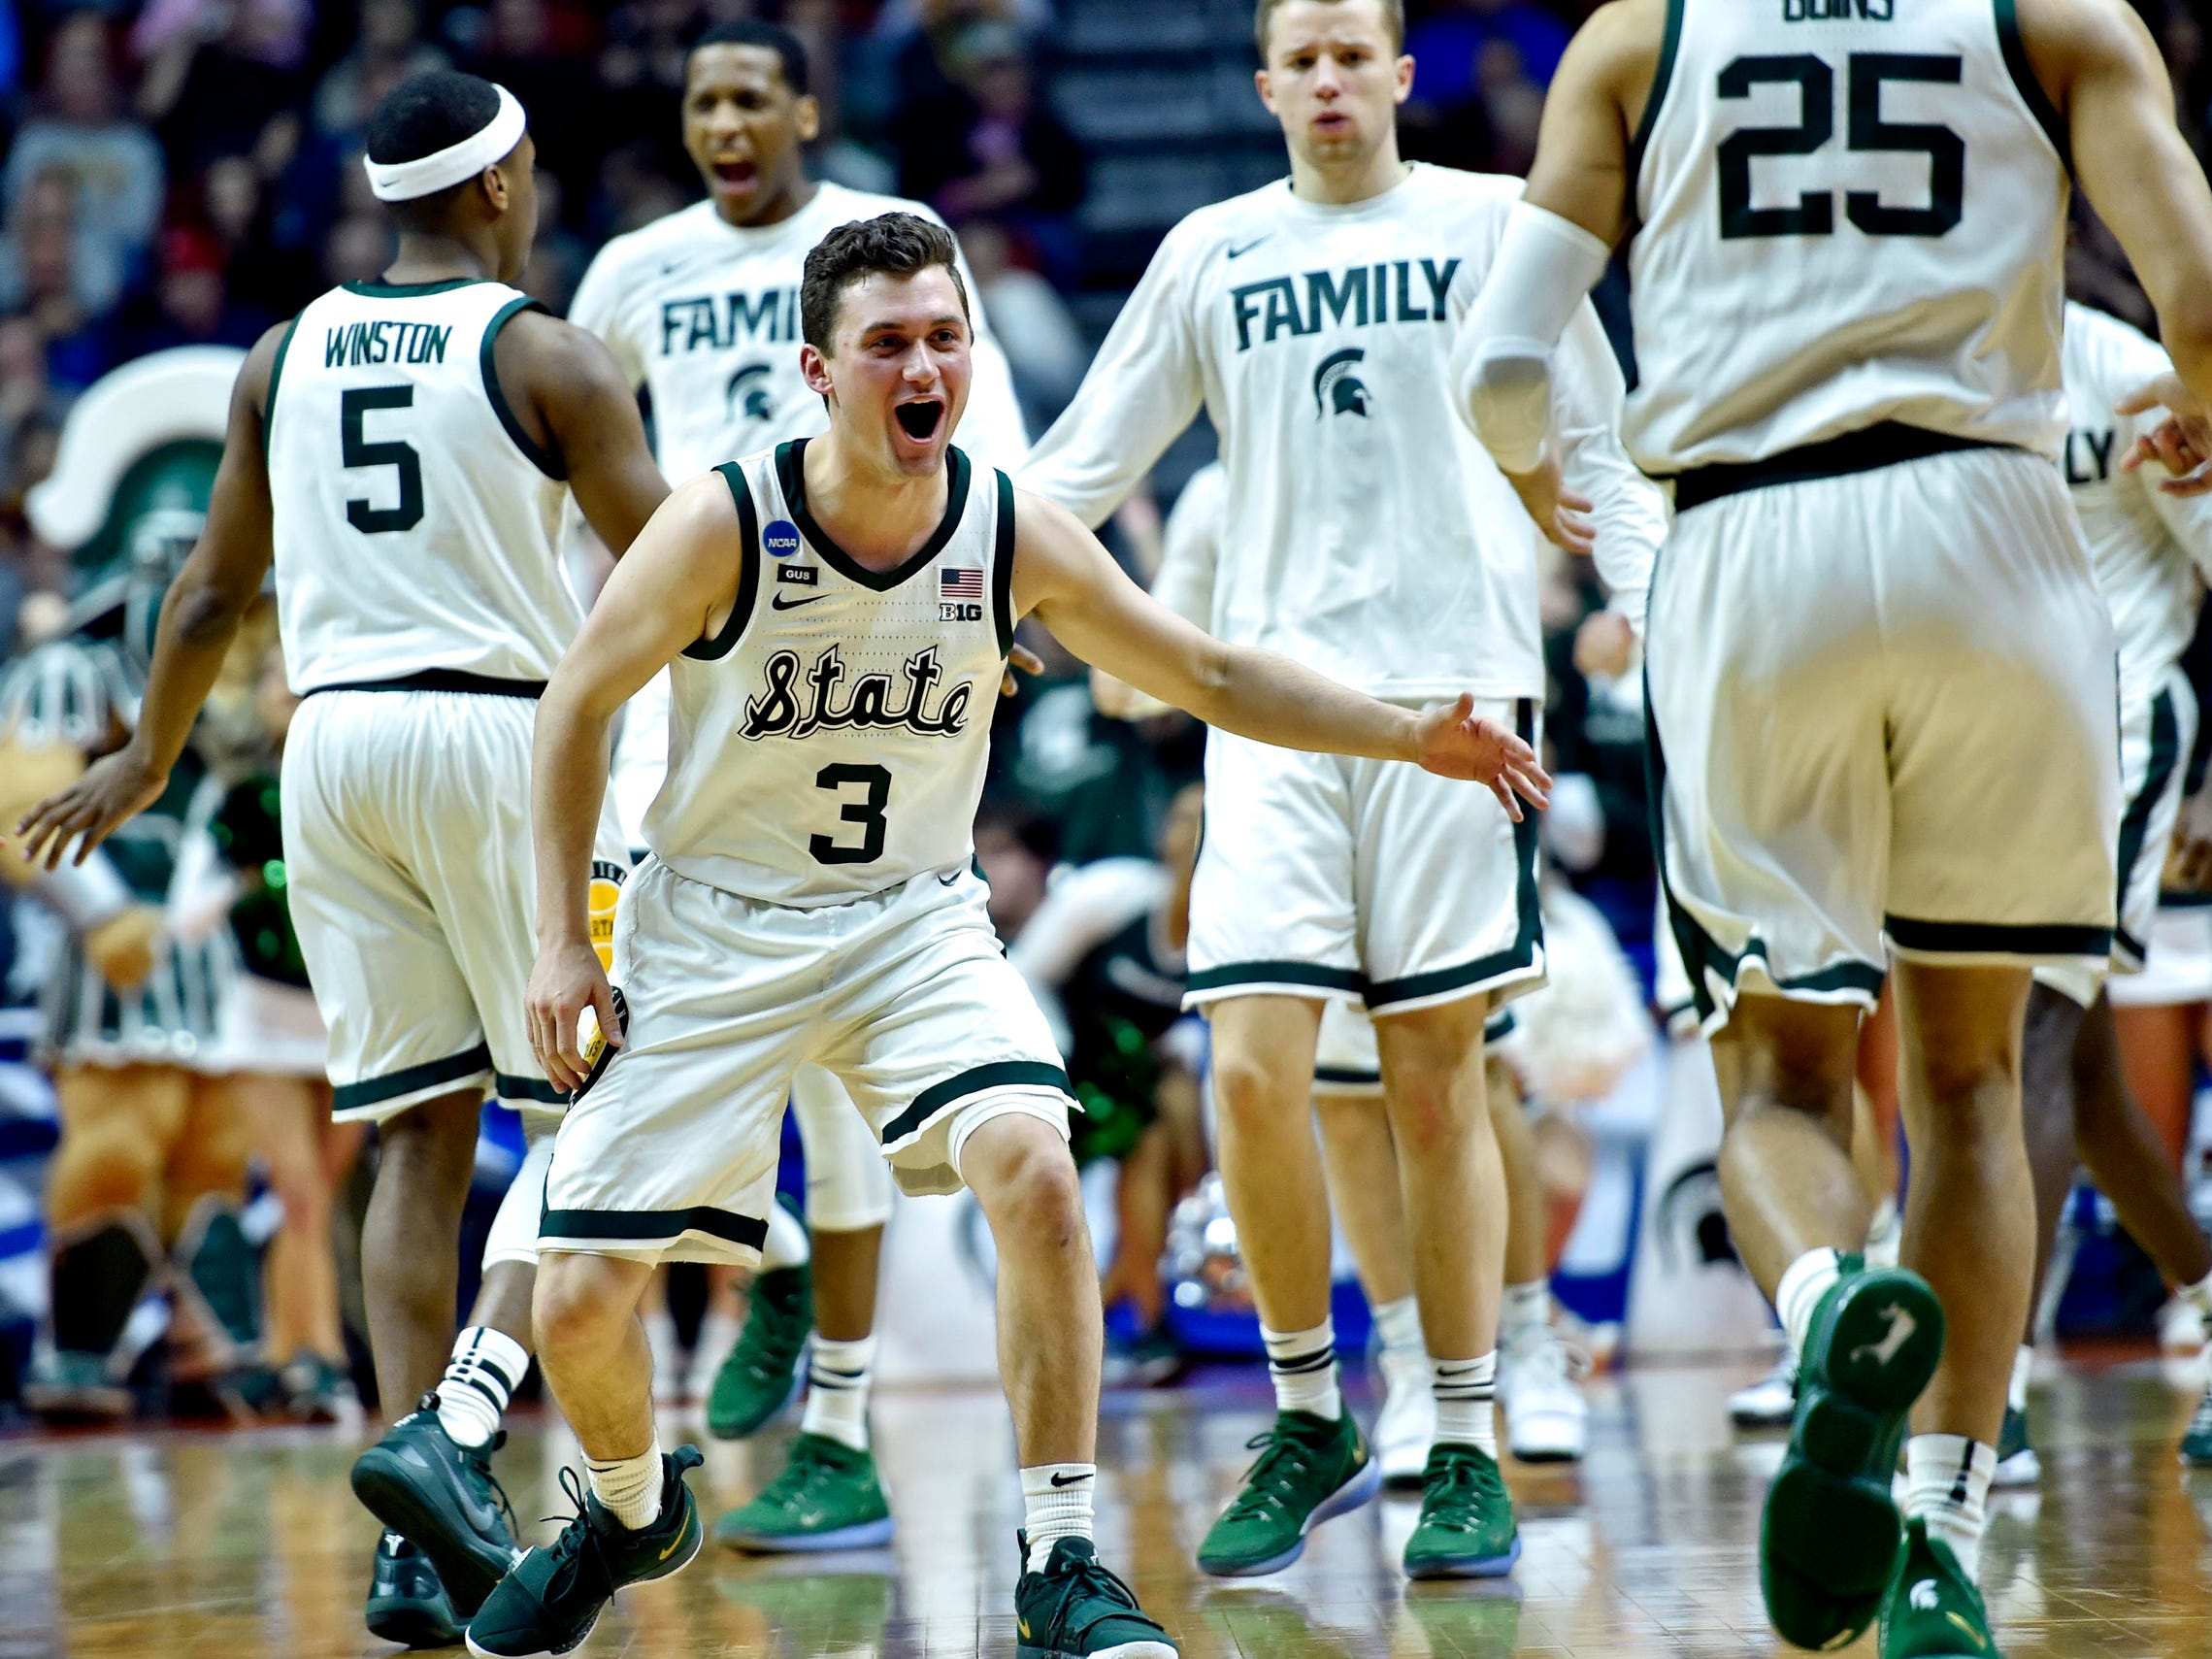 Michigan State guard Foster Loyer (3) celebrates against Minnesota in the first half in the second round of the NCAA tournament at Wells Fargo Arena, March 23, 2019.